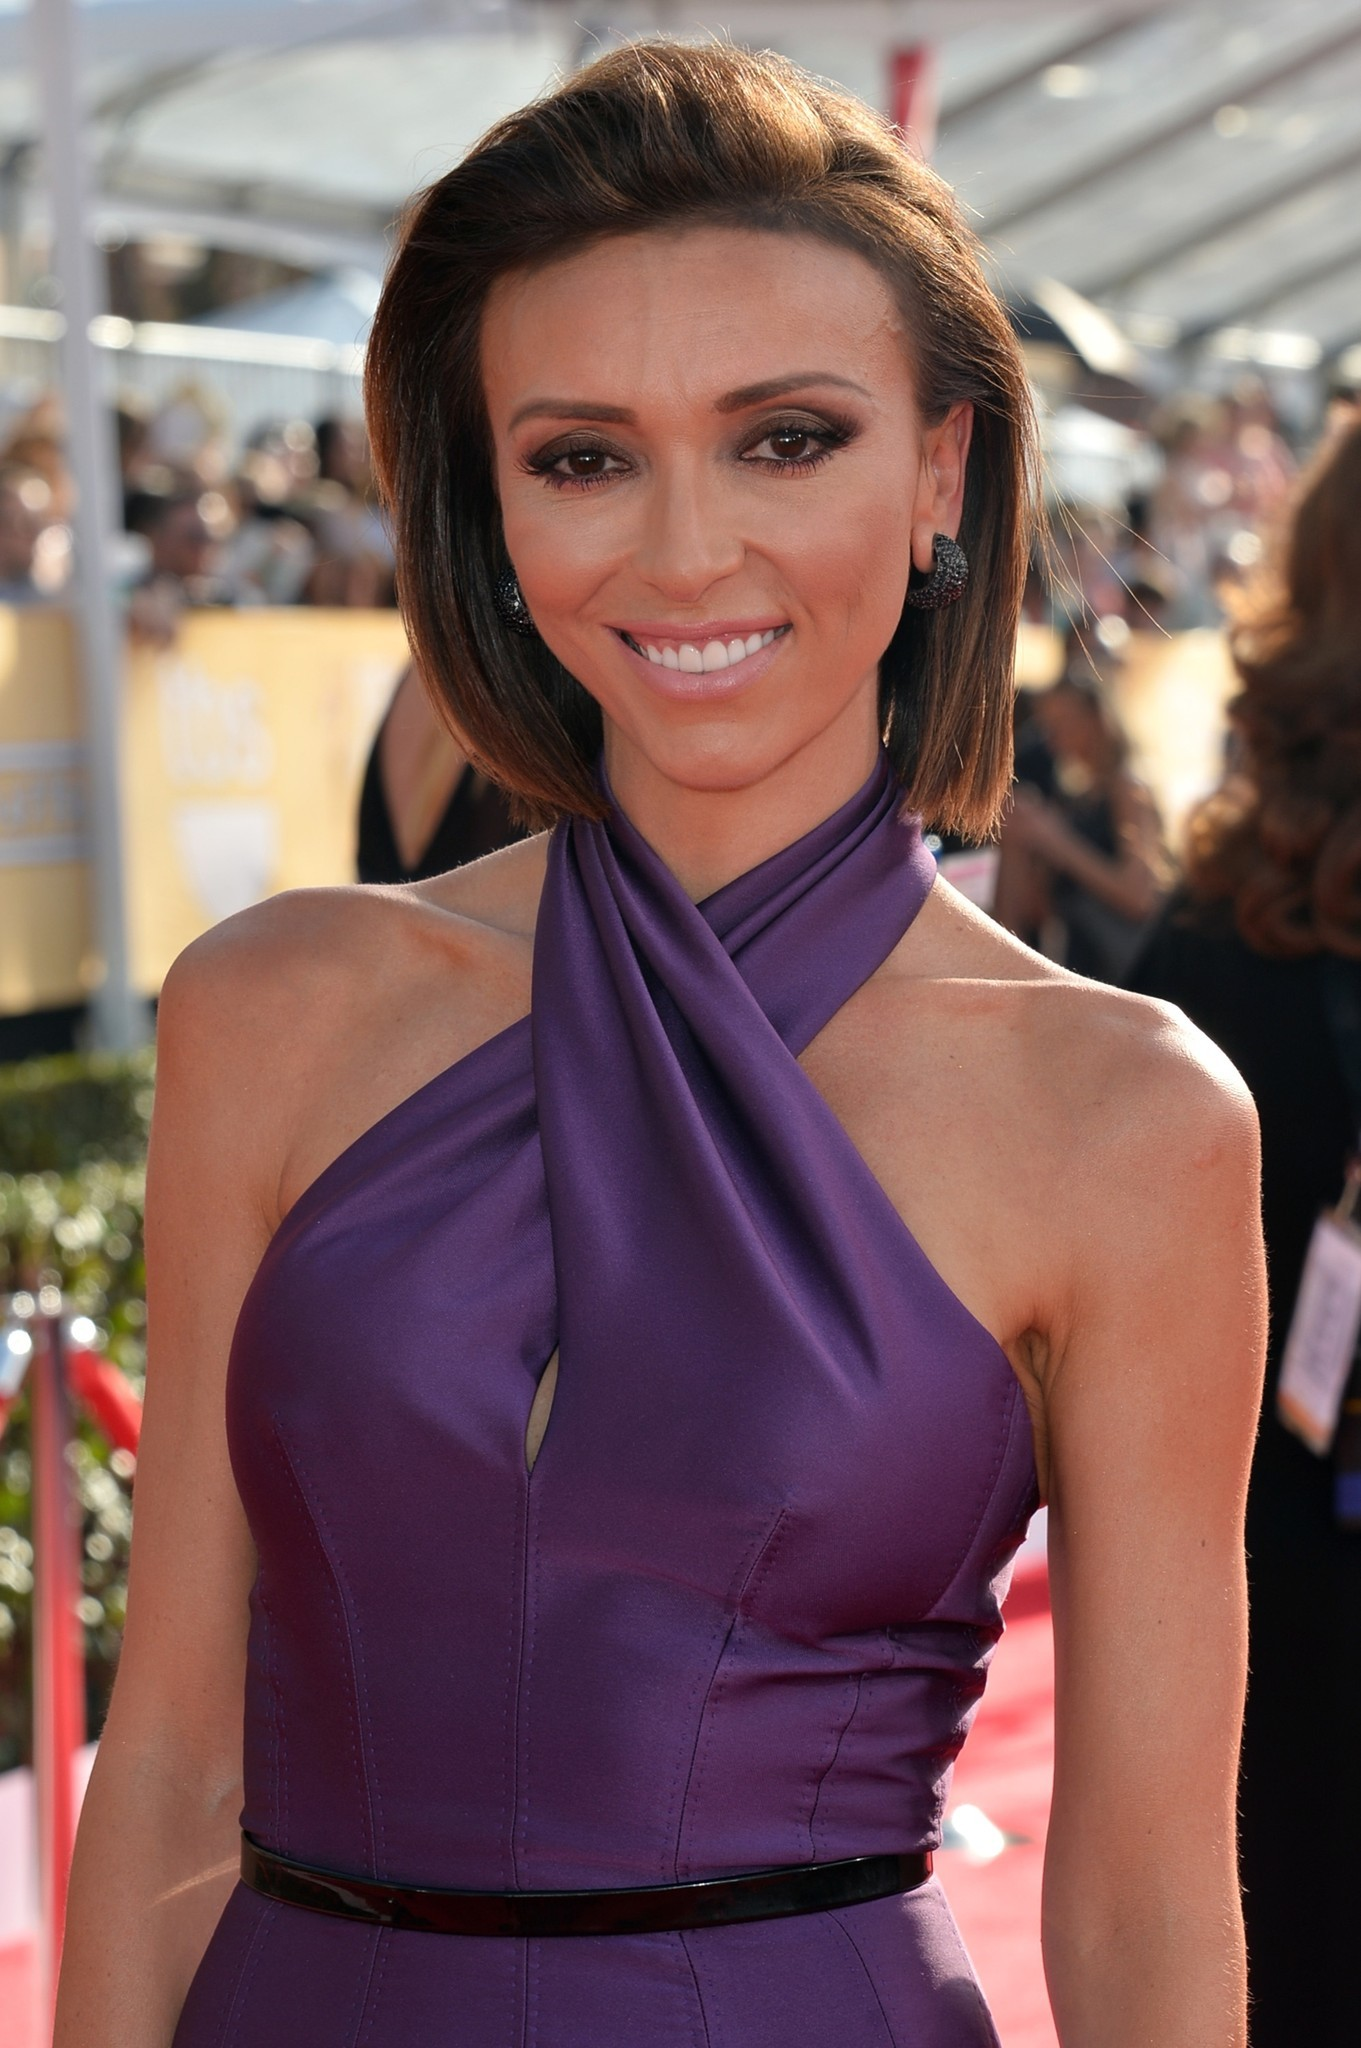 Congratulate, remarkable Giuliana rancic naked giuliana rancic that would